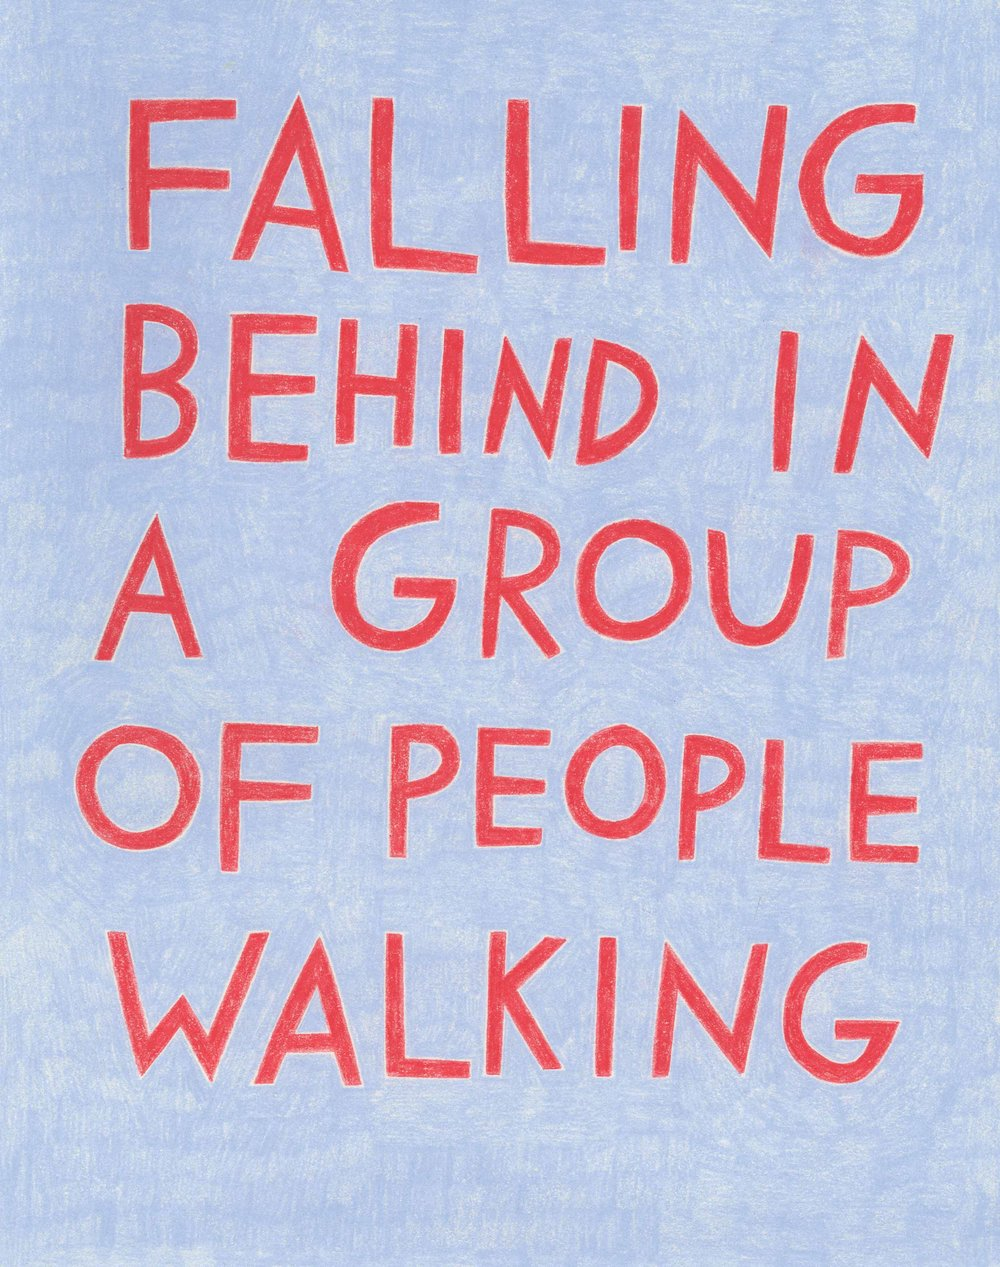 """Falling behind in a group of people walking,"" in bright red on light blue."